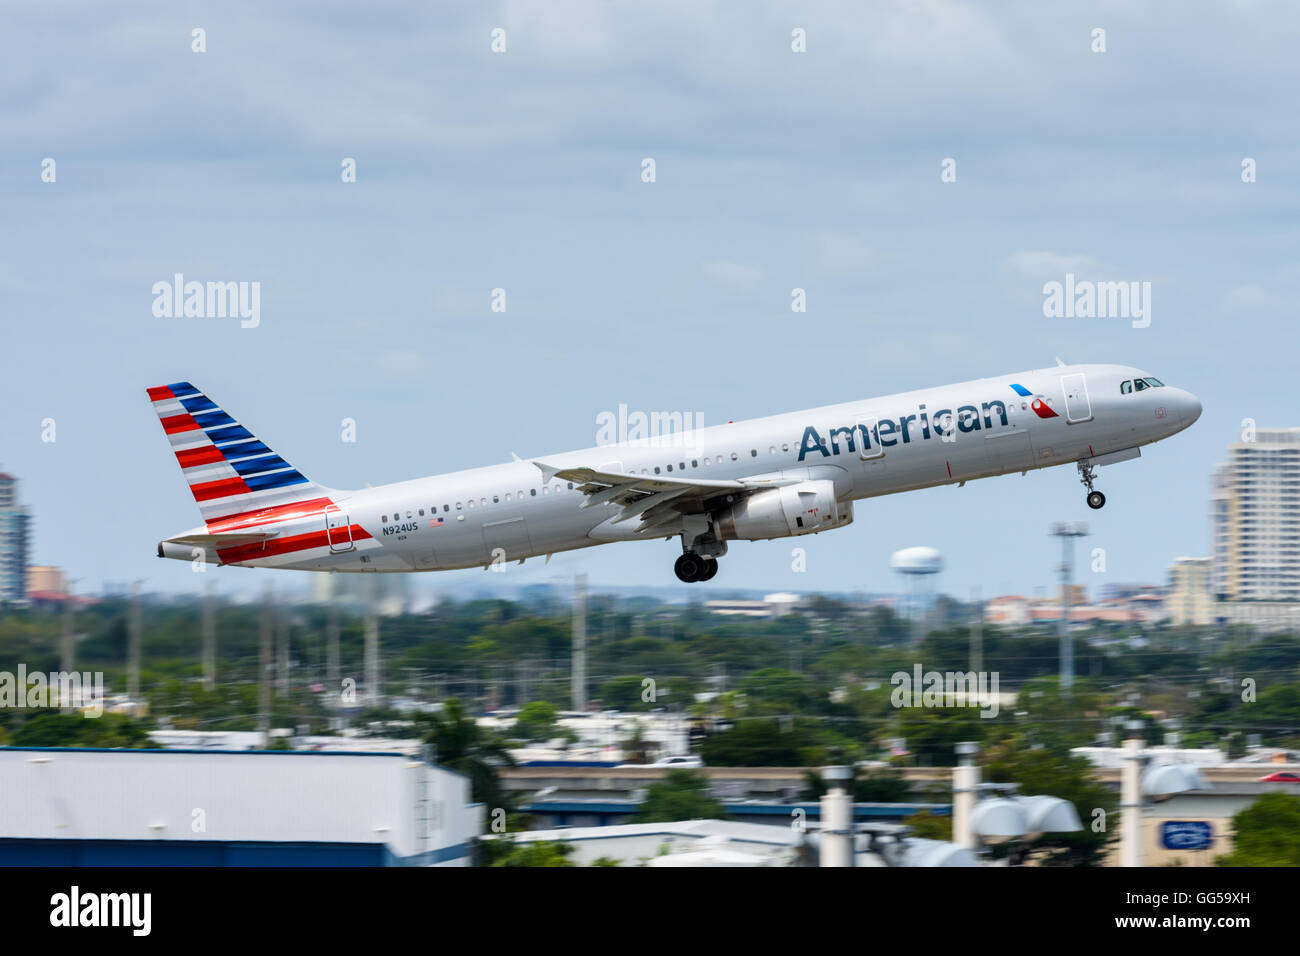 American Airlines Airbus A321 plane taking off from Fort